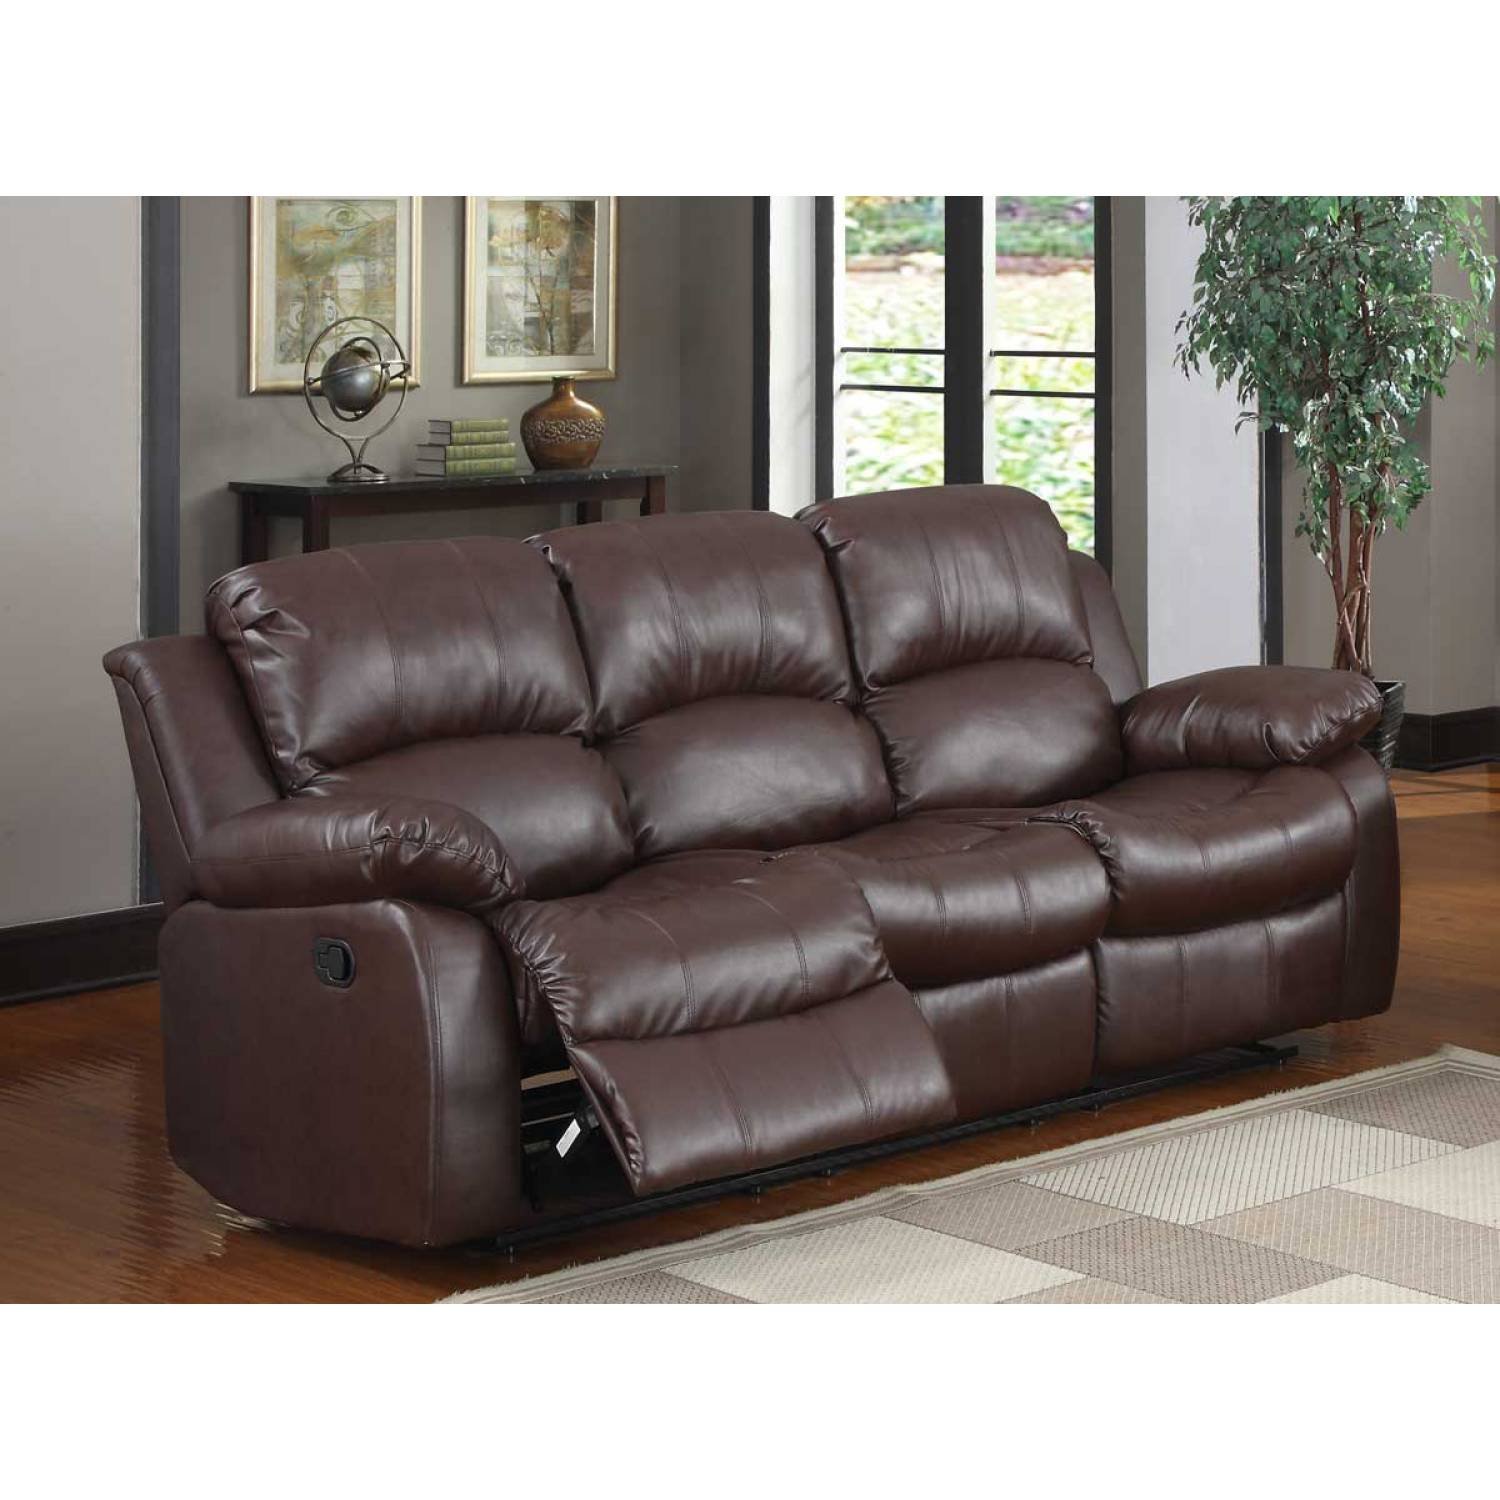 Cranley double reclining sofa brown bonded leather for Double leather sofa